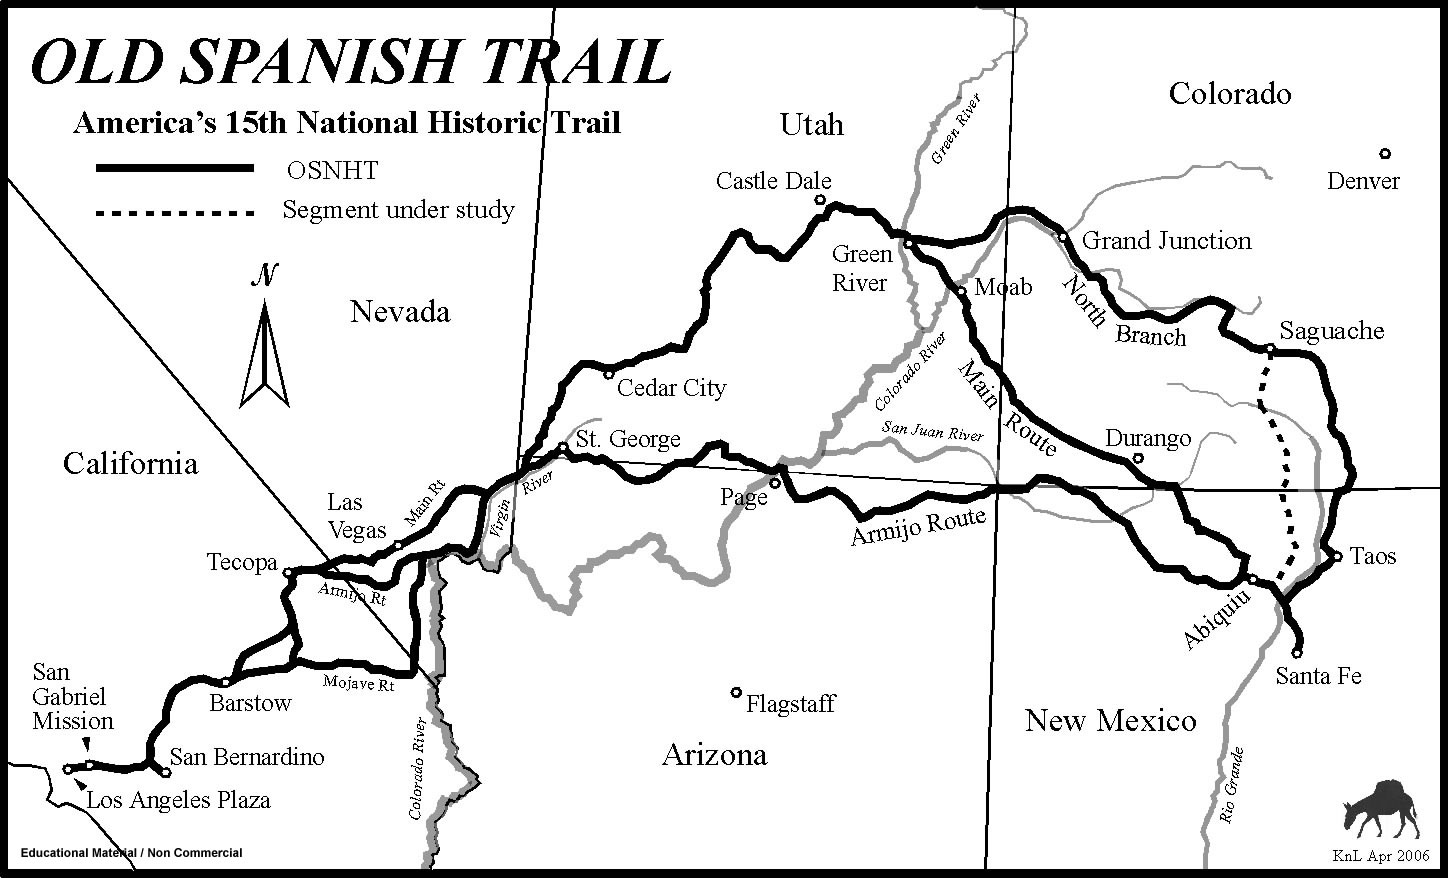 Utah History and American Indian Experience